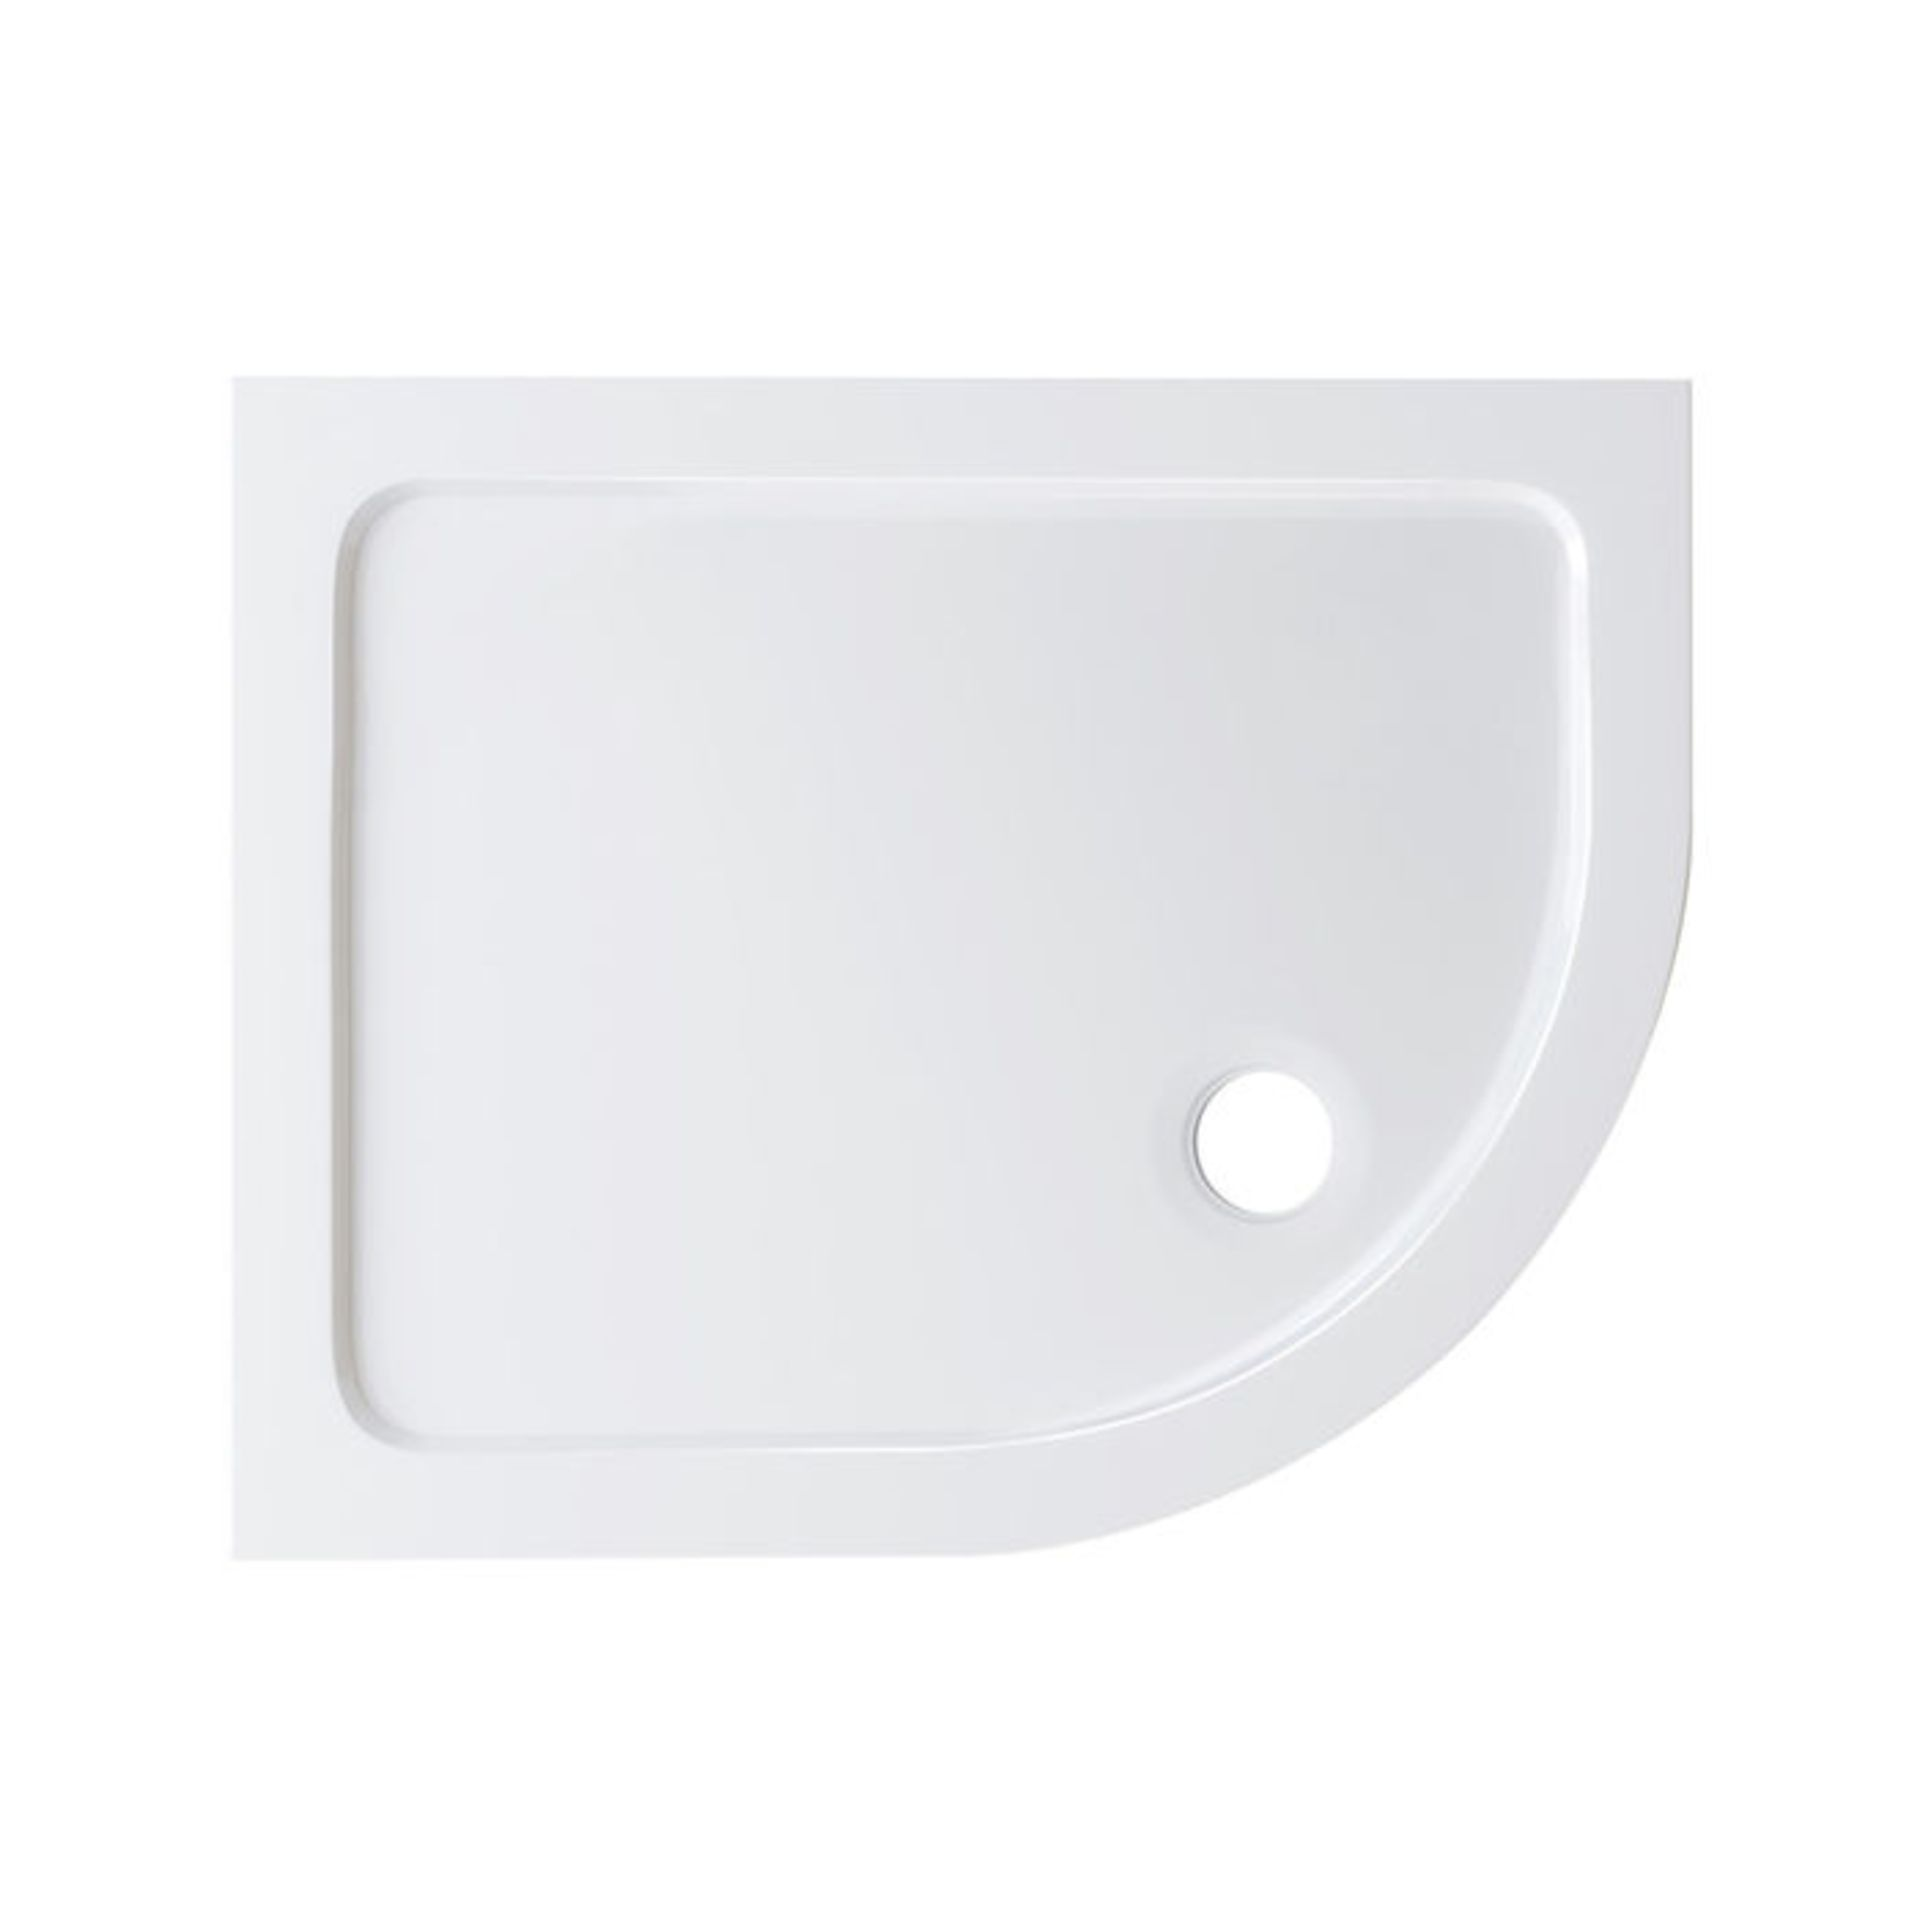 Lot 3 - (NY63) 1000x800mm Offset Quadrant Ultra Slim Stone Shower Tray - Right. RRP £249.99. Low profile